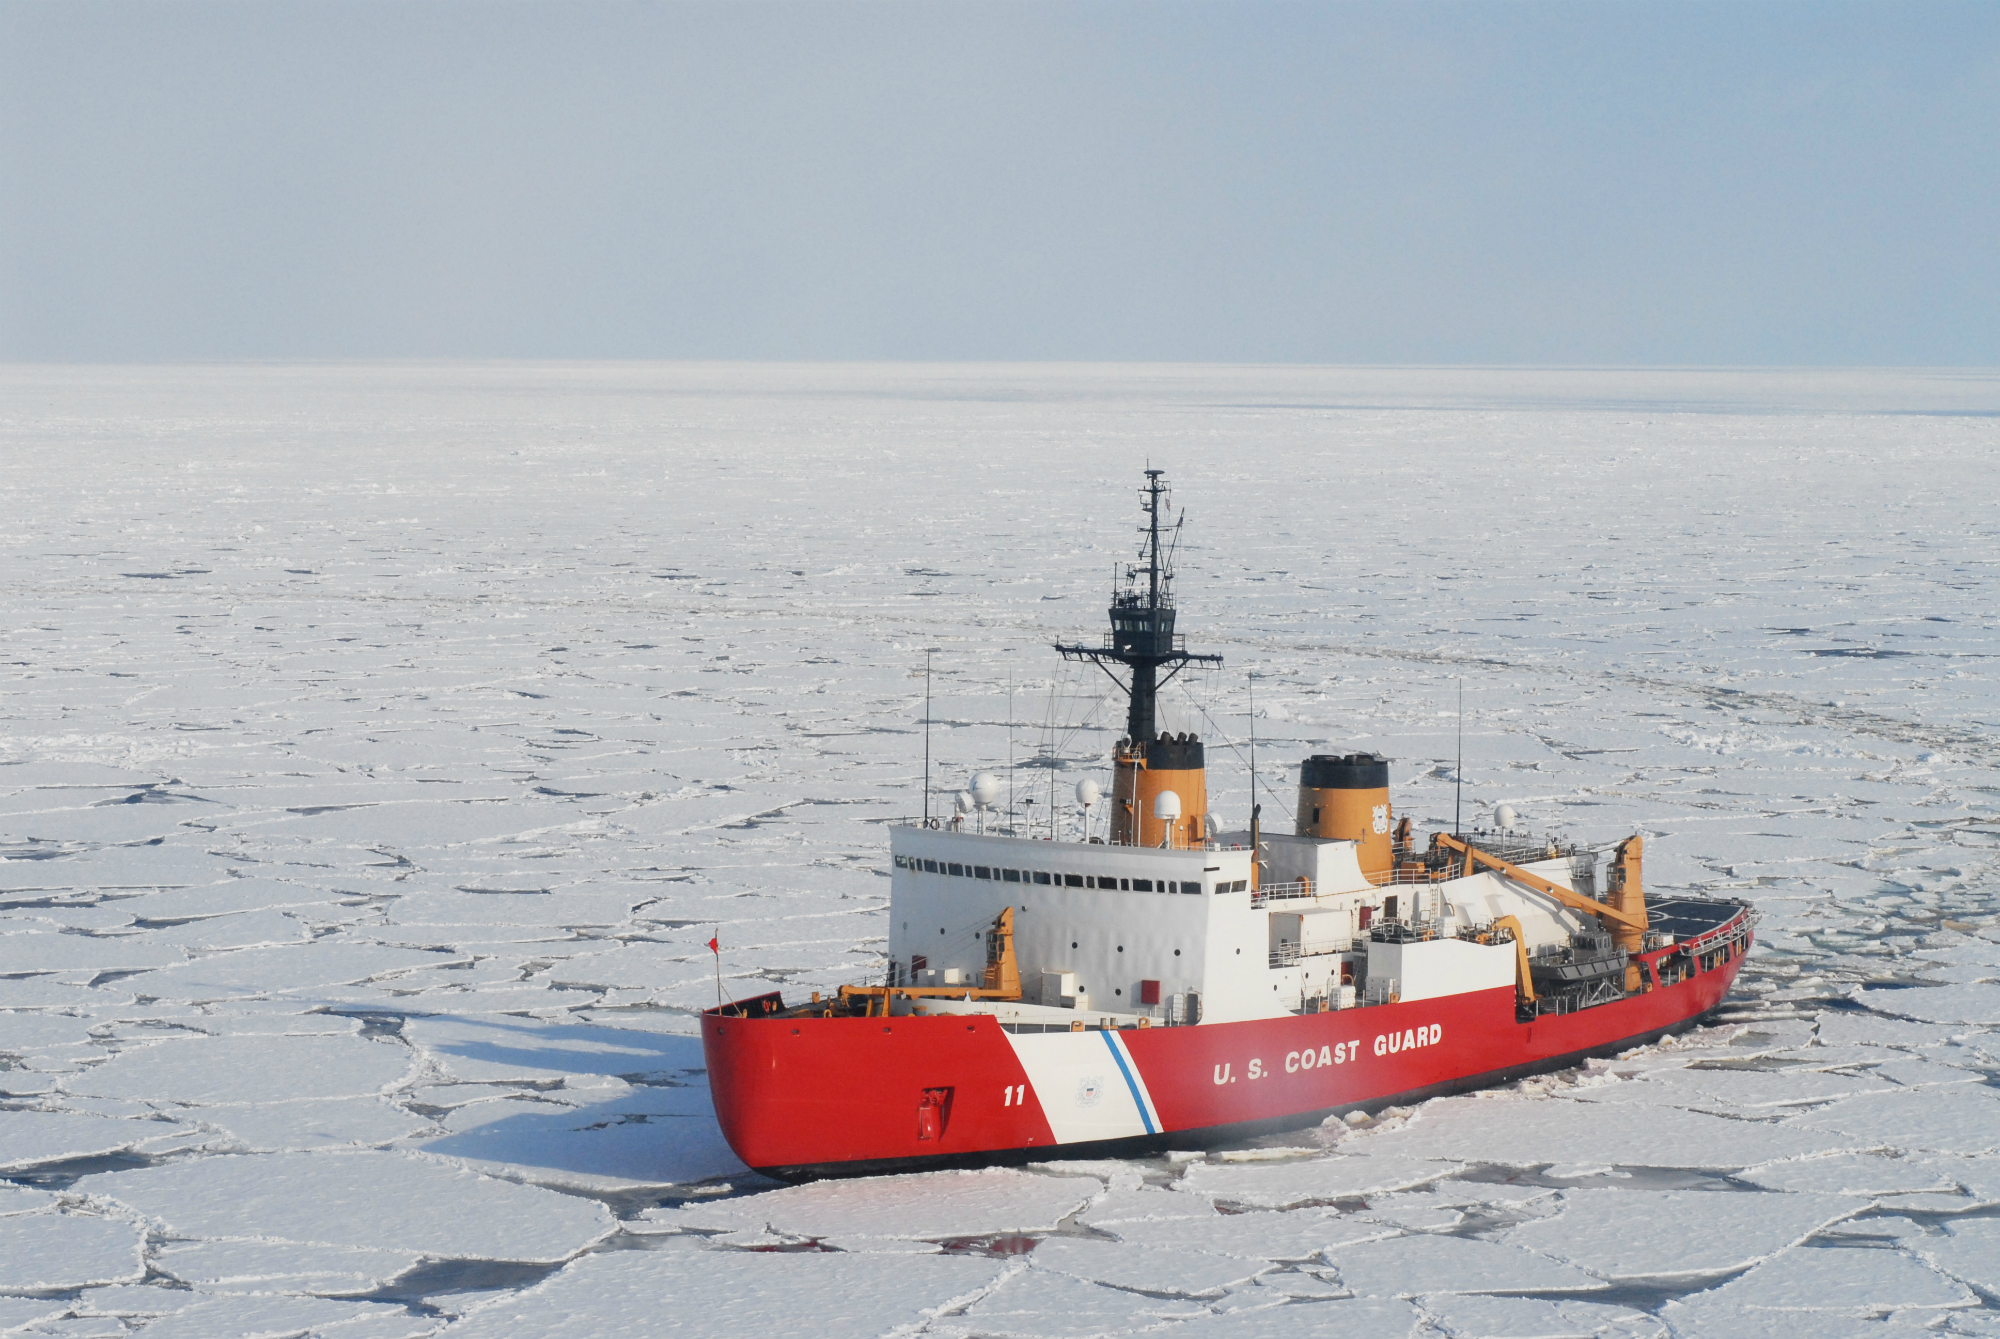 USCGC Polar Sea, one of 3 U.S. icebreakers